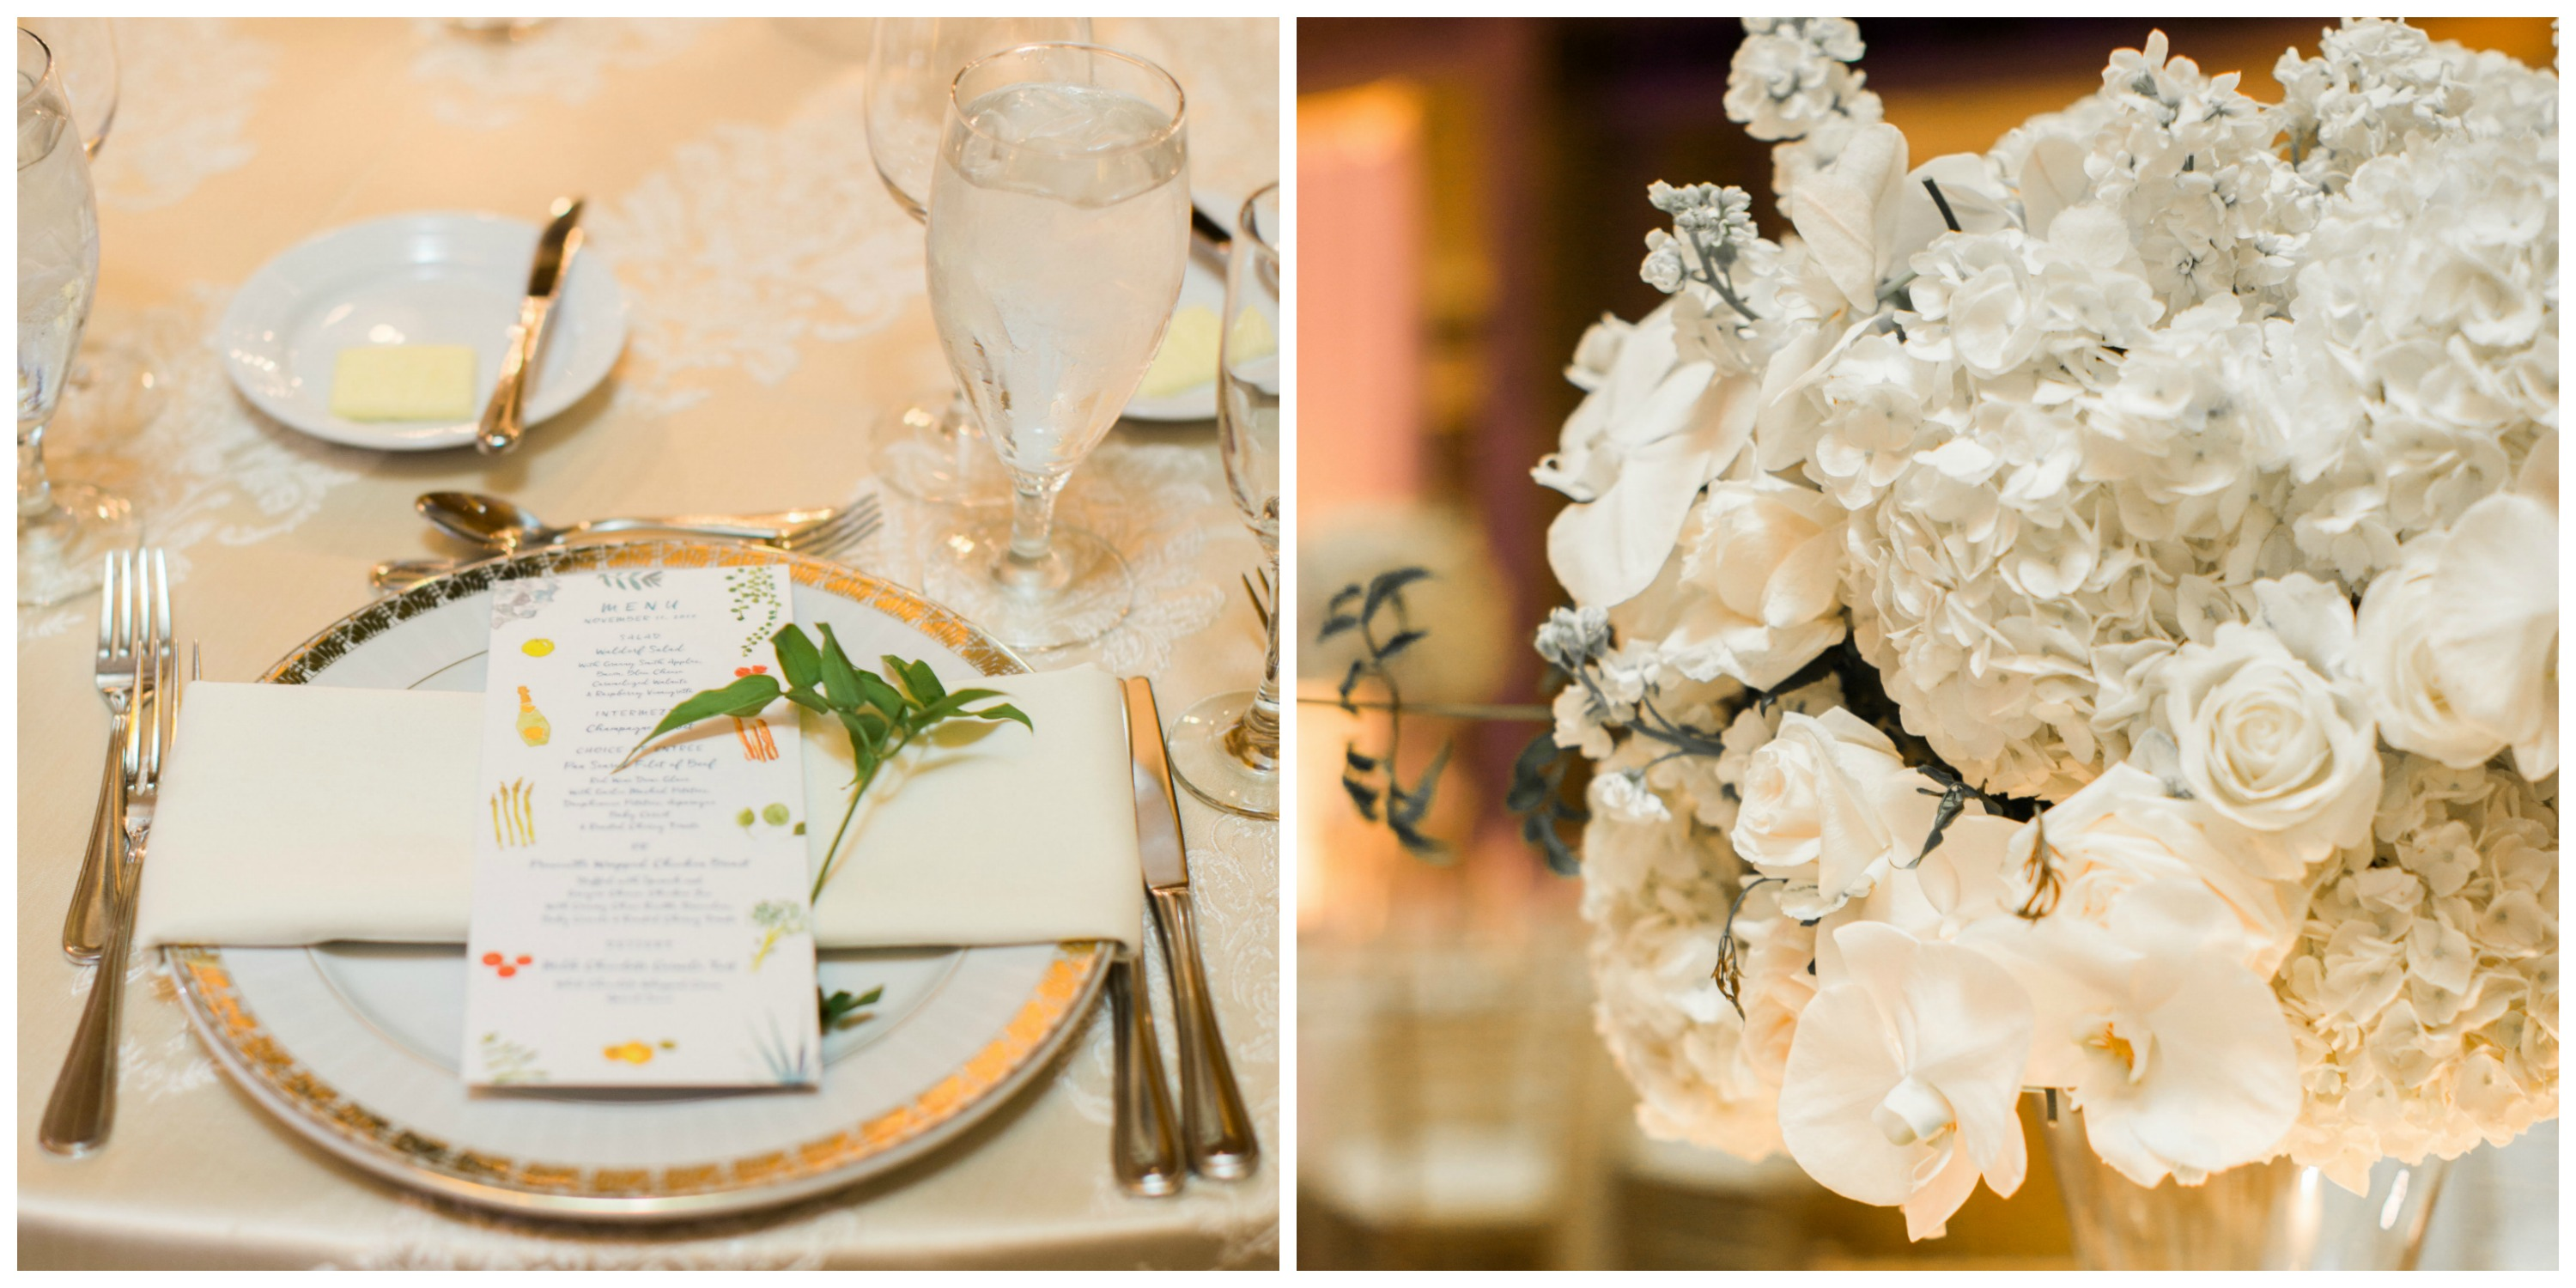 Arizona Biltmore Wedding Details | Arizona Wedding Coordinator